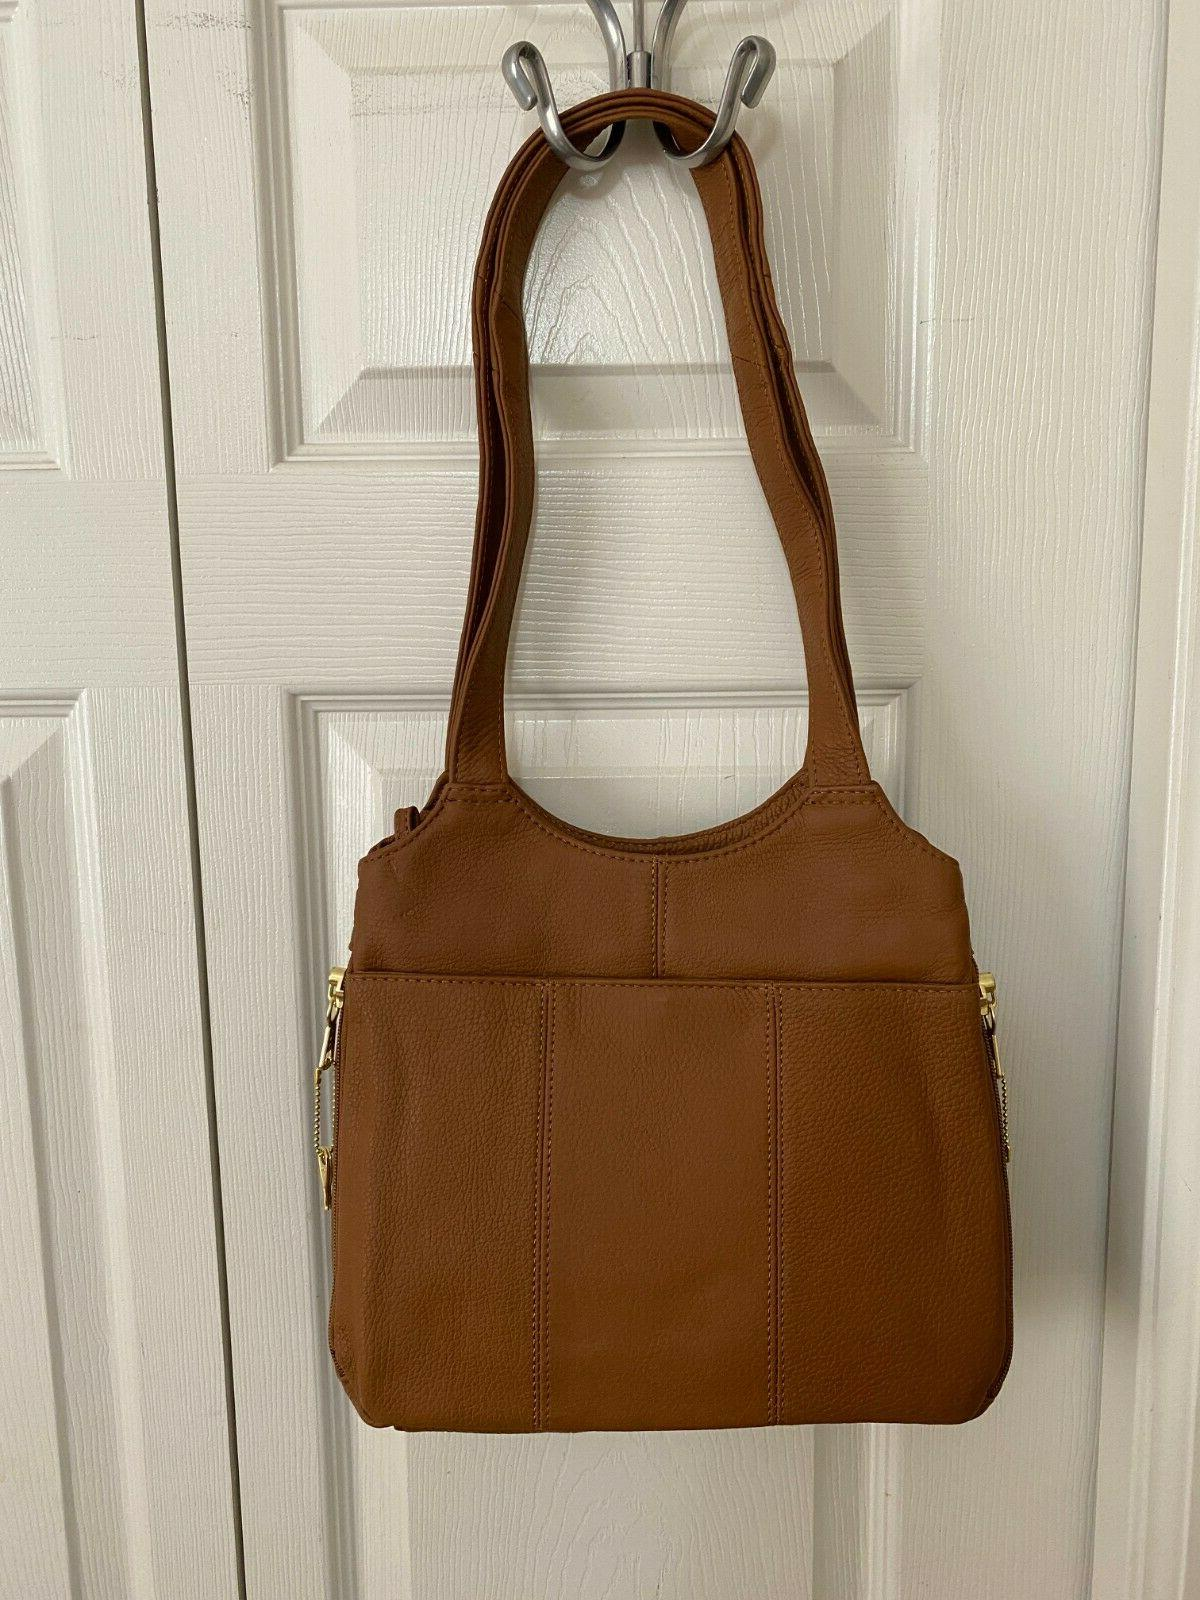 Roma Leathers RIGHT or Lock/Key Carry